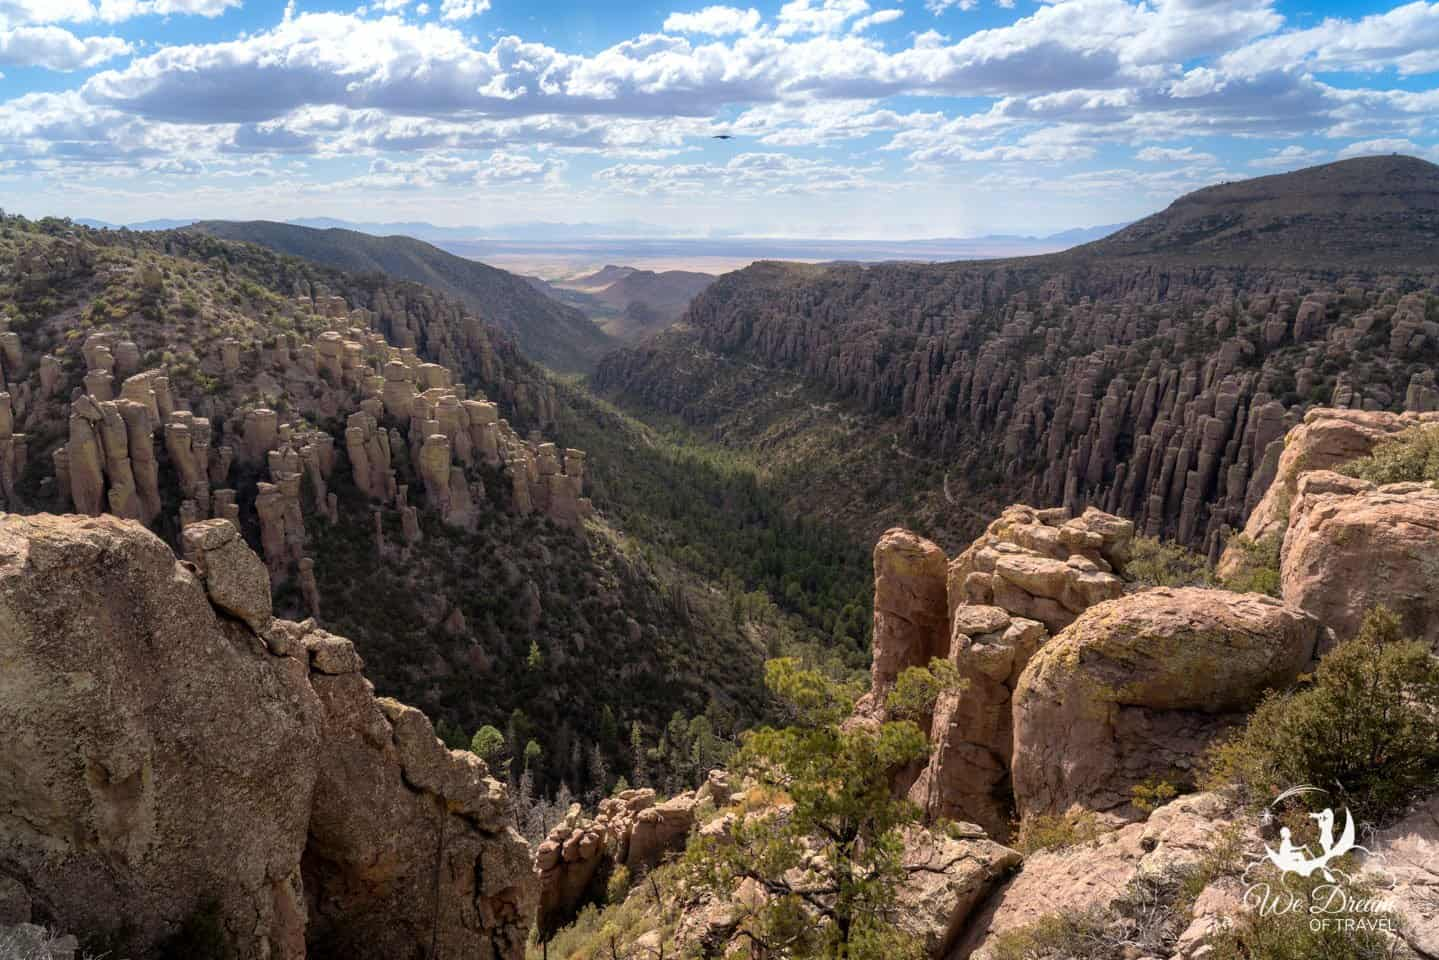 Inspiration Point was my favorite view for sunset in Chiricahua NM, but it is beautiful any time of day.